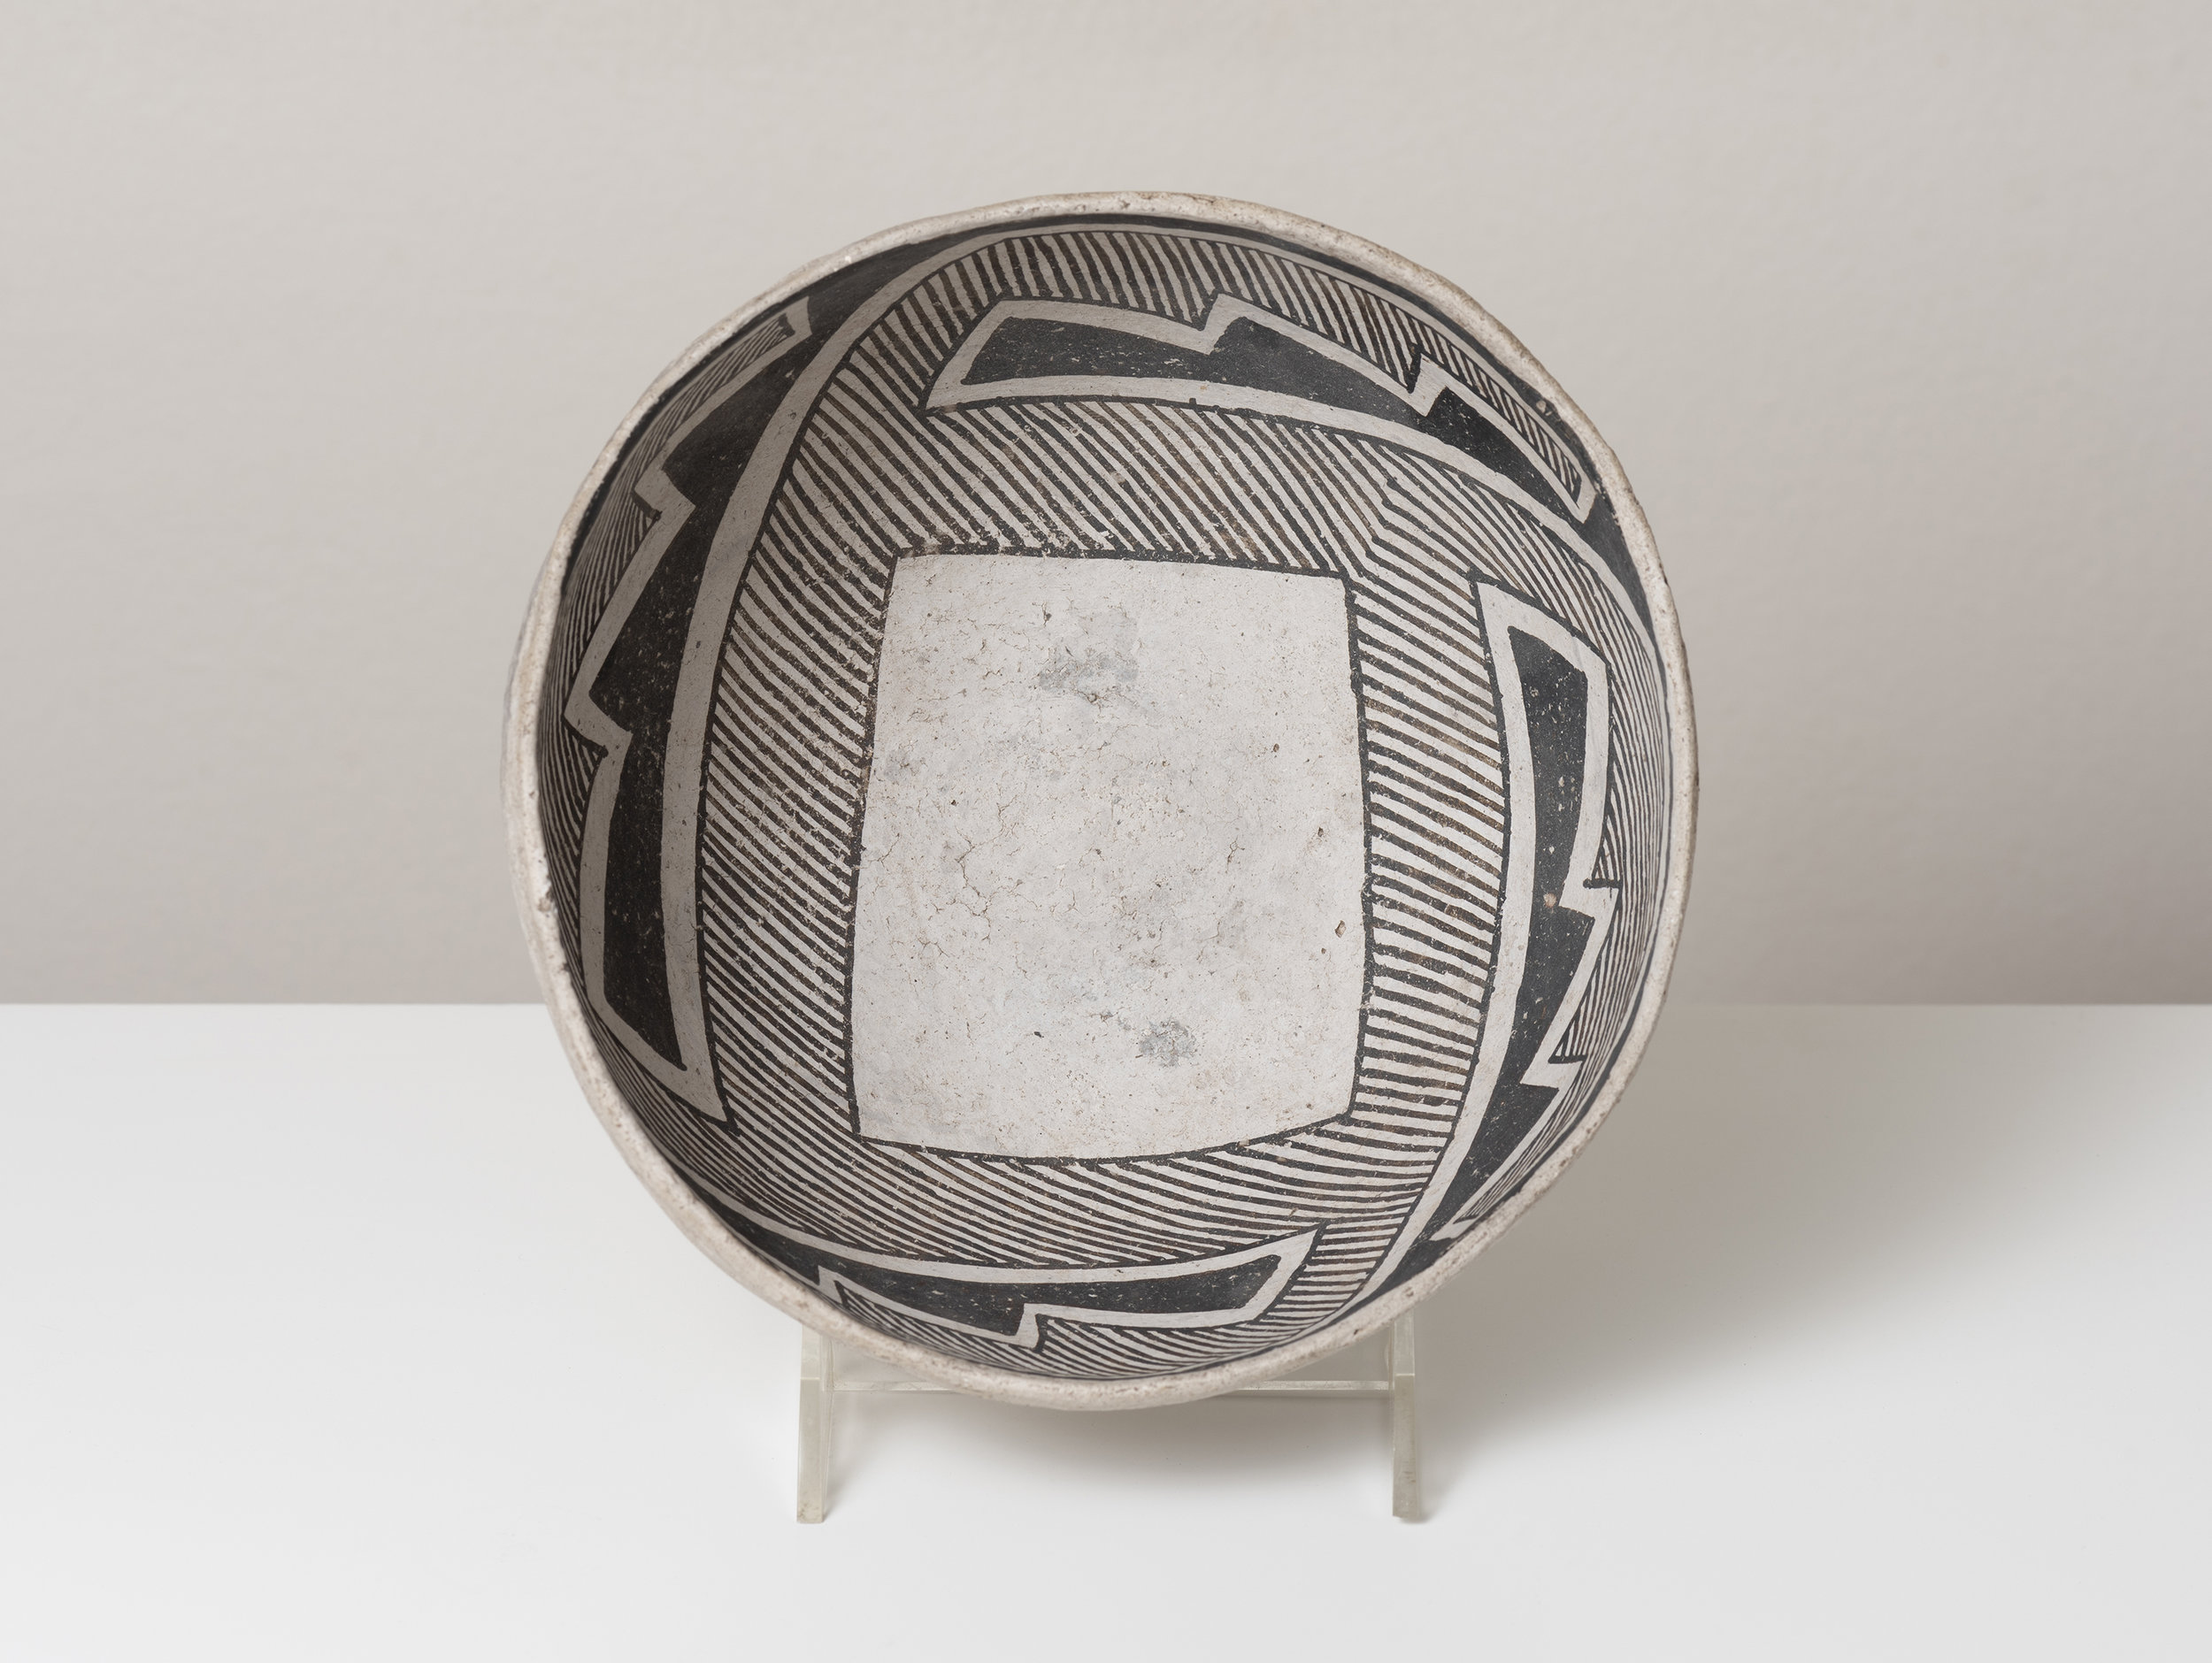 Socorro Black-on-white  Trance portal / directional abstraction c. 1100 - 1300 CE Painted ceramic 7 inches diameter, 4 inches depth